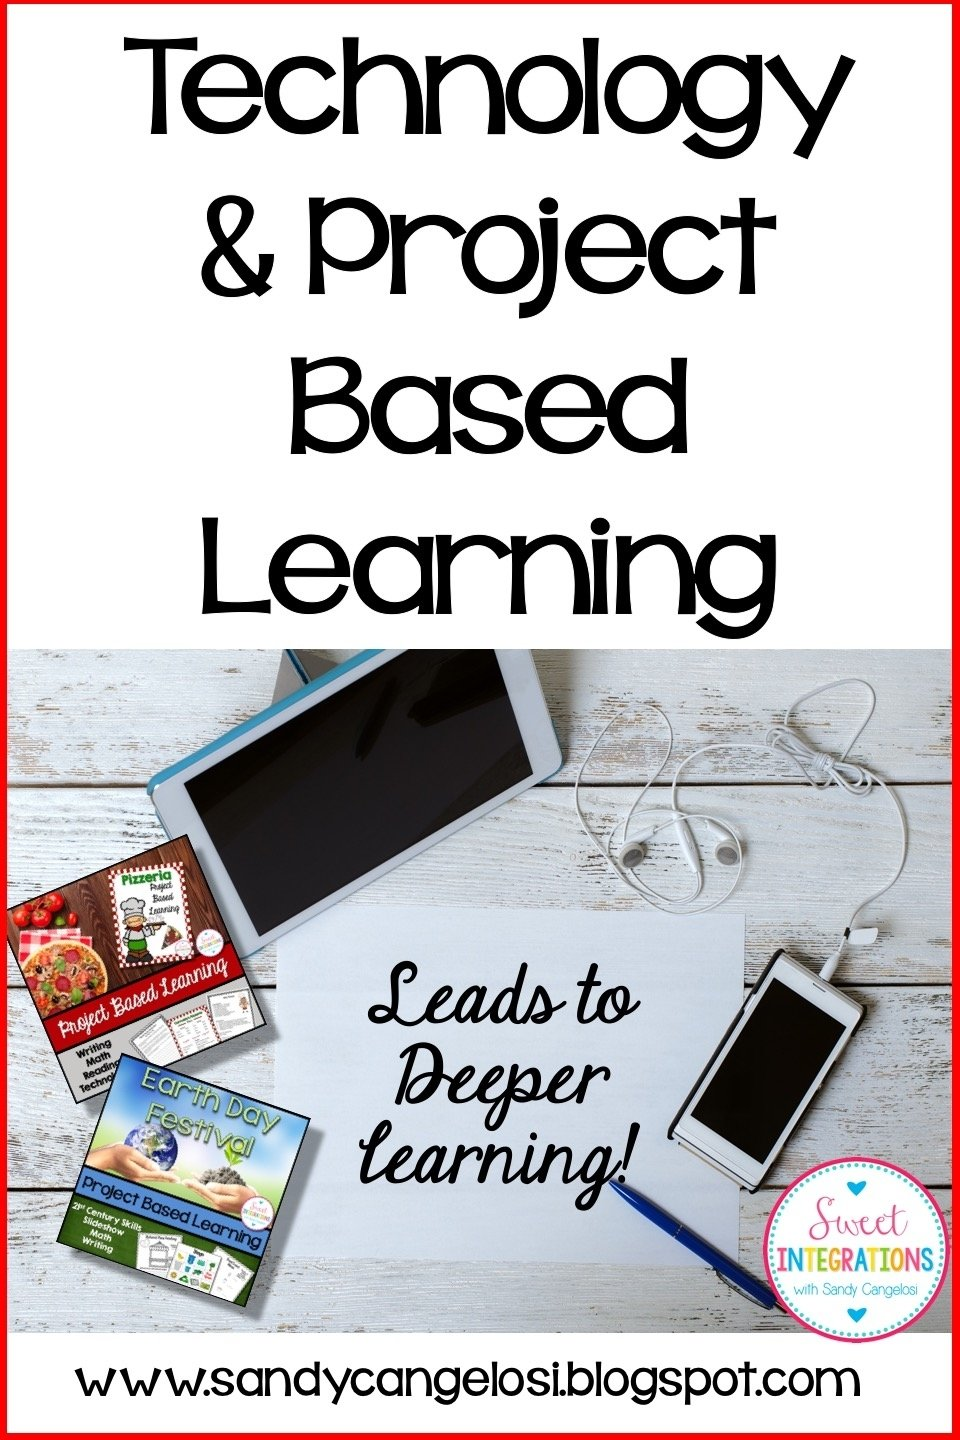 10 Ideal Project Based Learning Ideas For Elementary blending technology and project based learning sweet integrations 1 2020